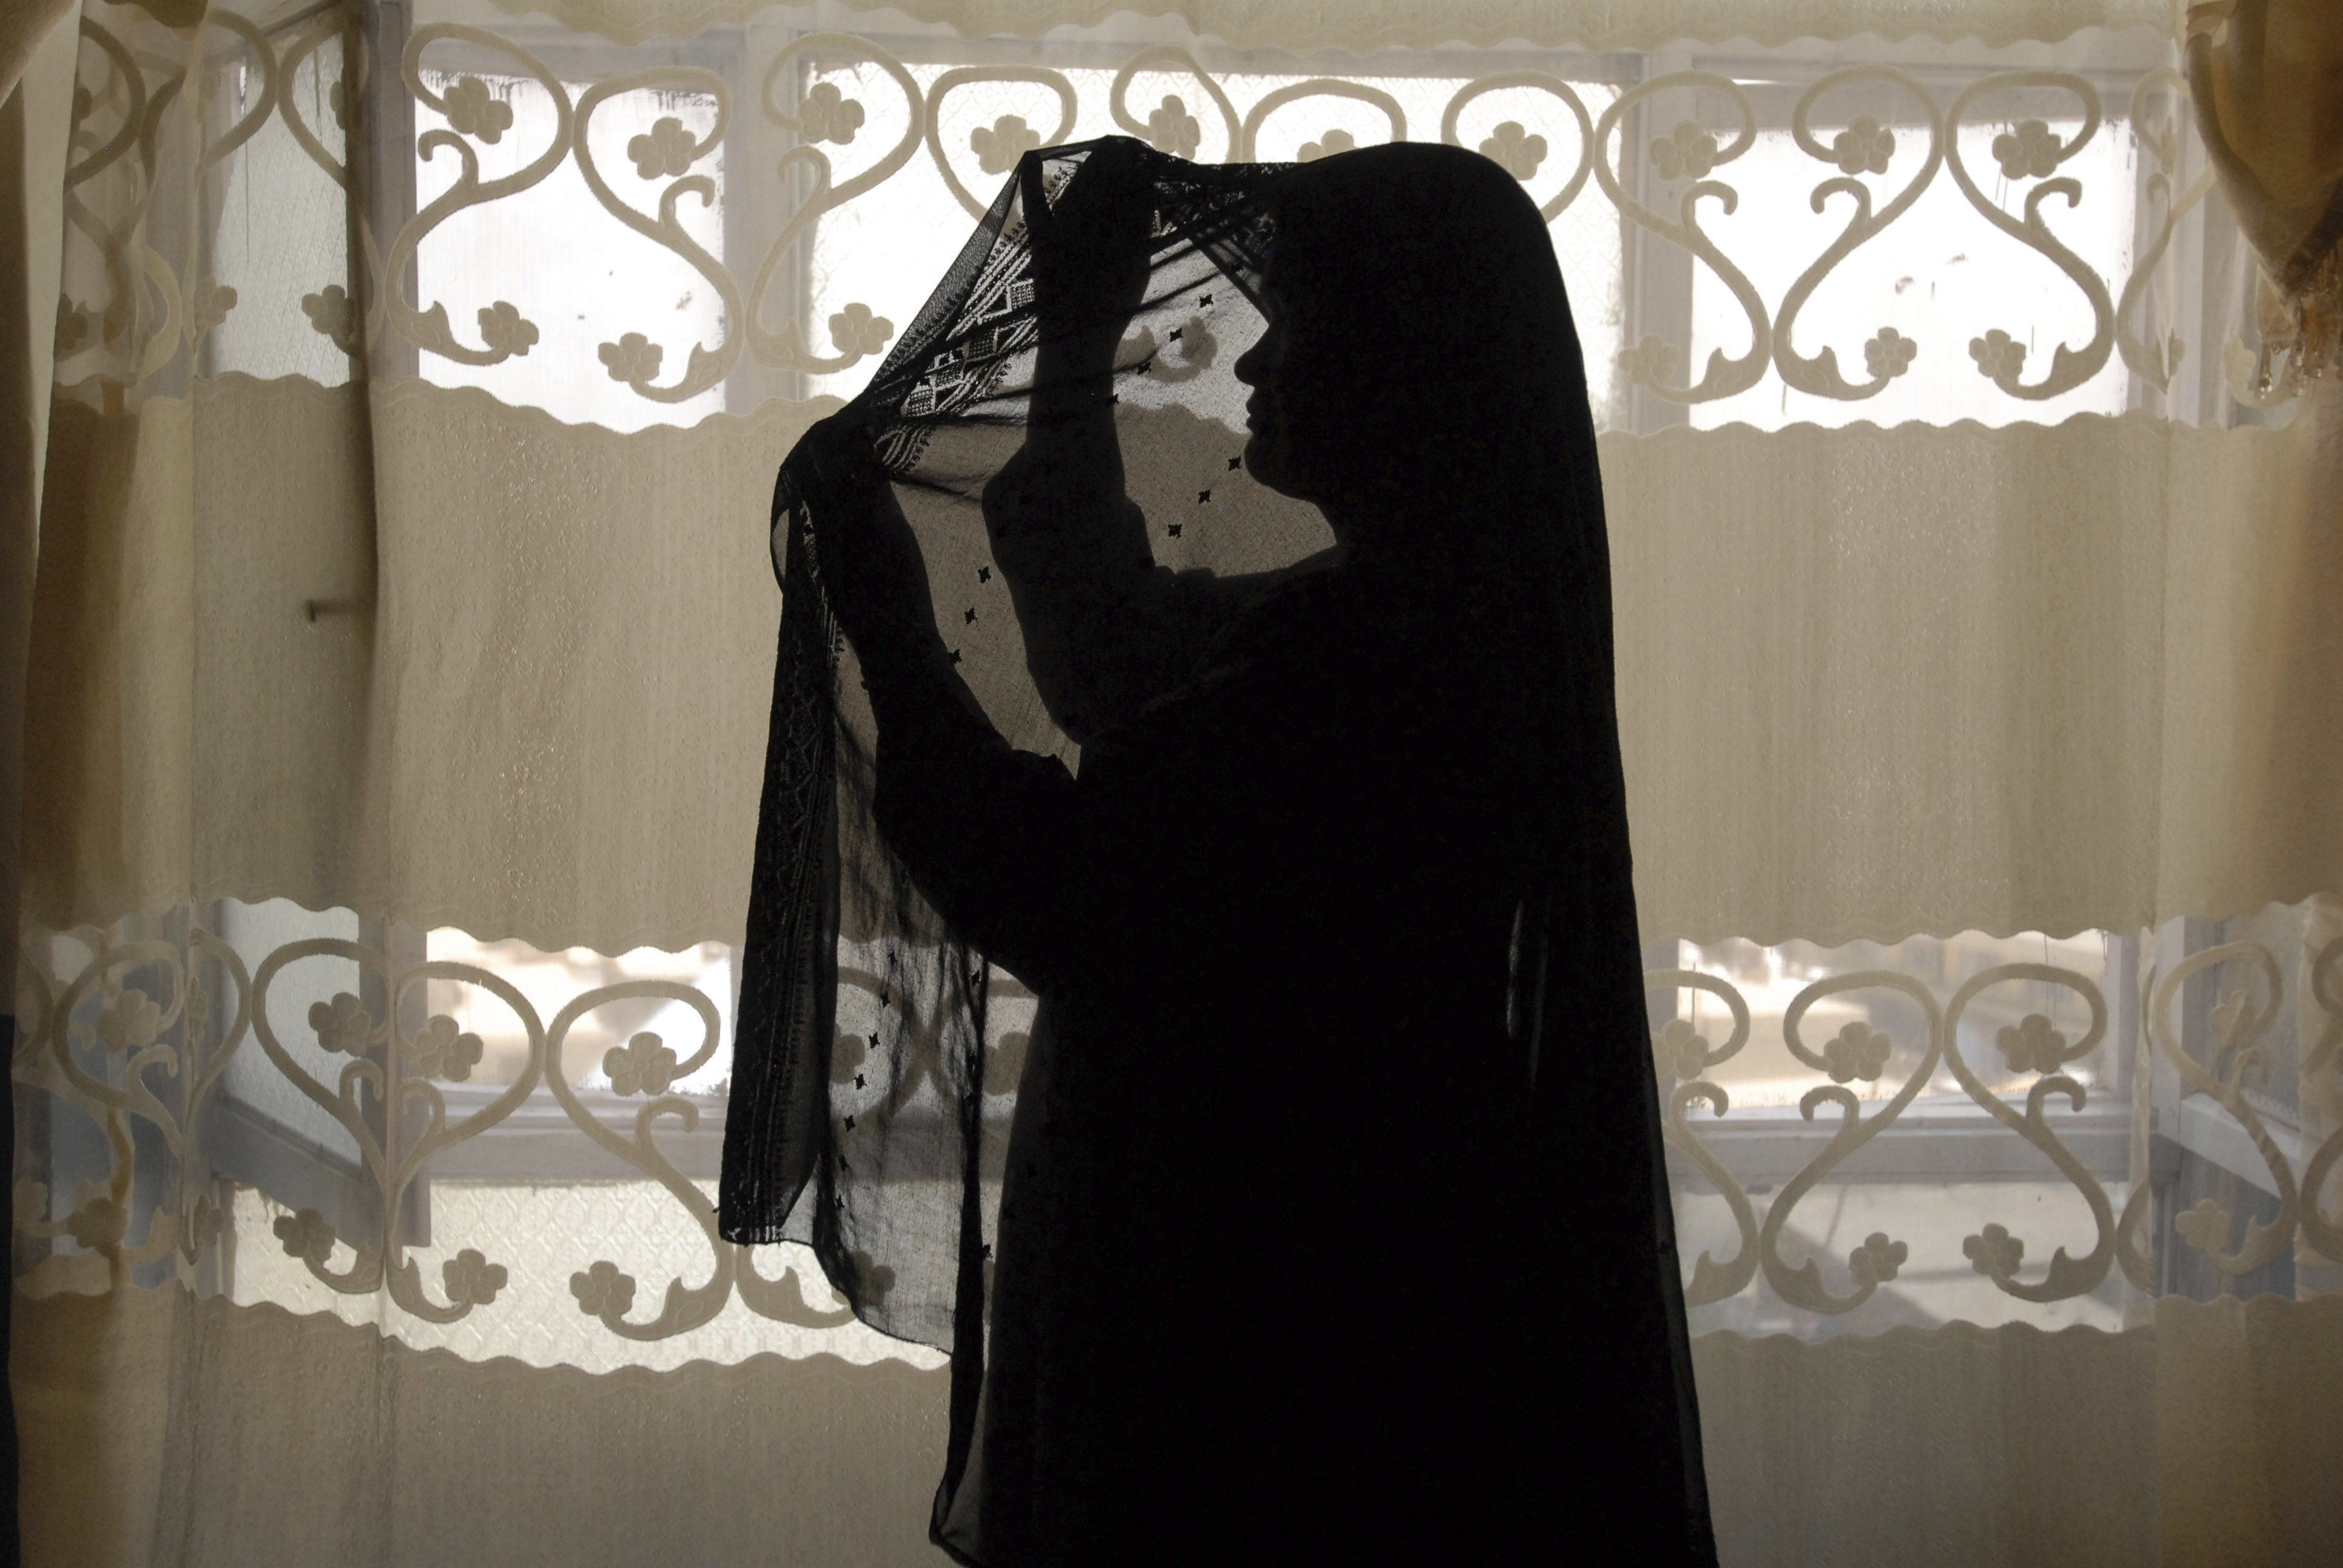 An unidentified Afghan prostitute fixes her headscarf to cover her face in Kabul, 2008. Afghanistan is one of the world's most conservative countries, yet its sex trade appears to be thriving.